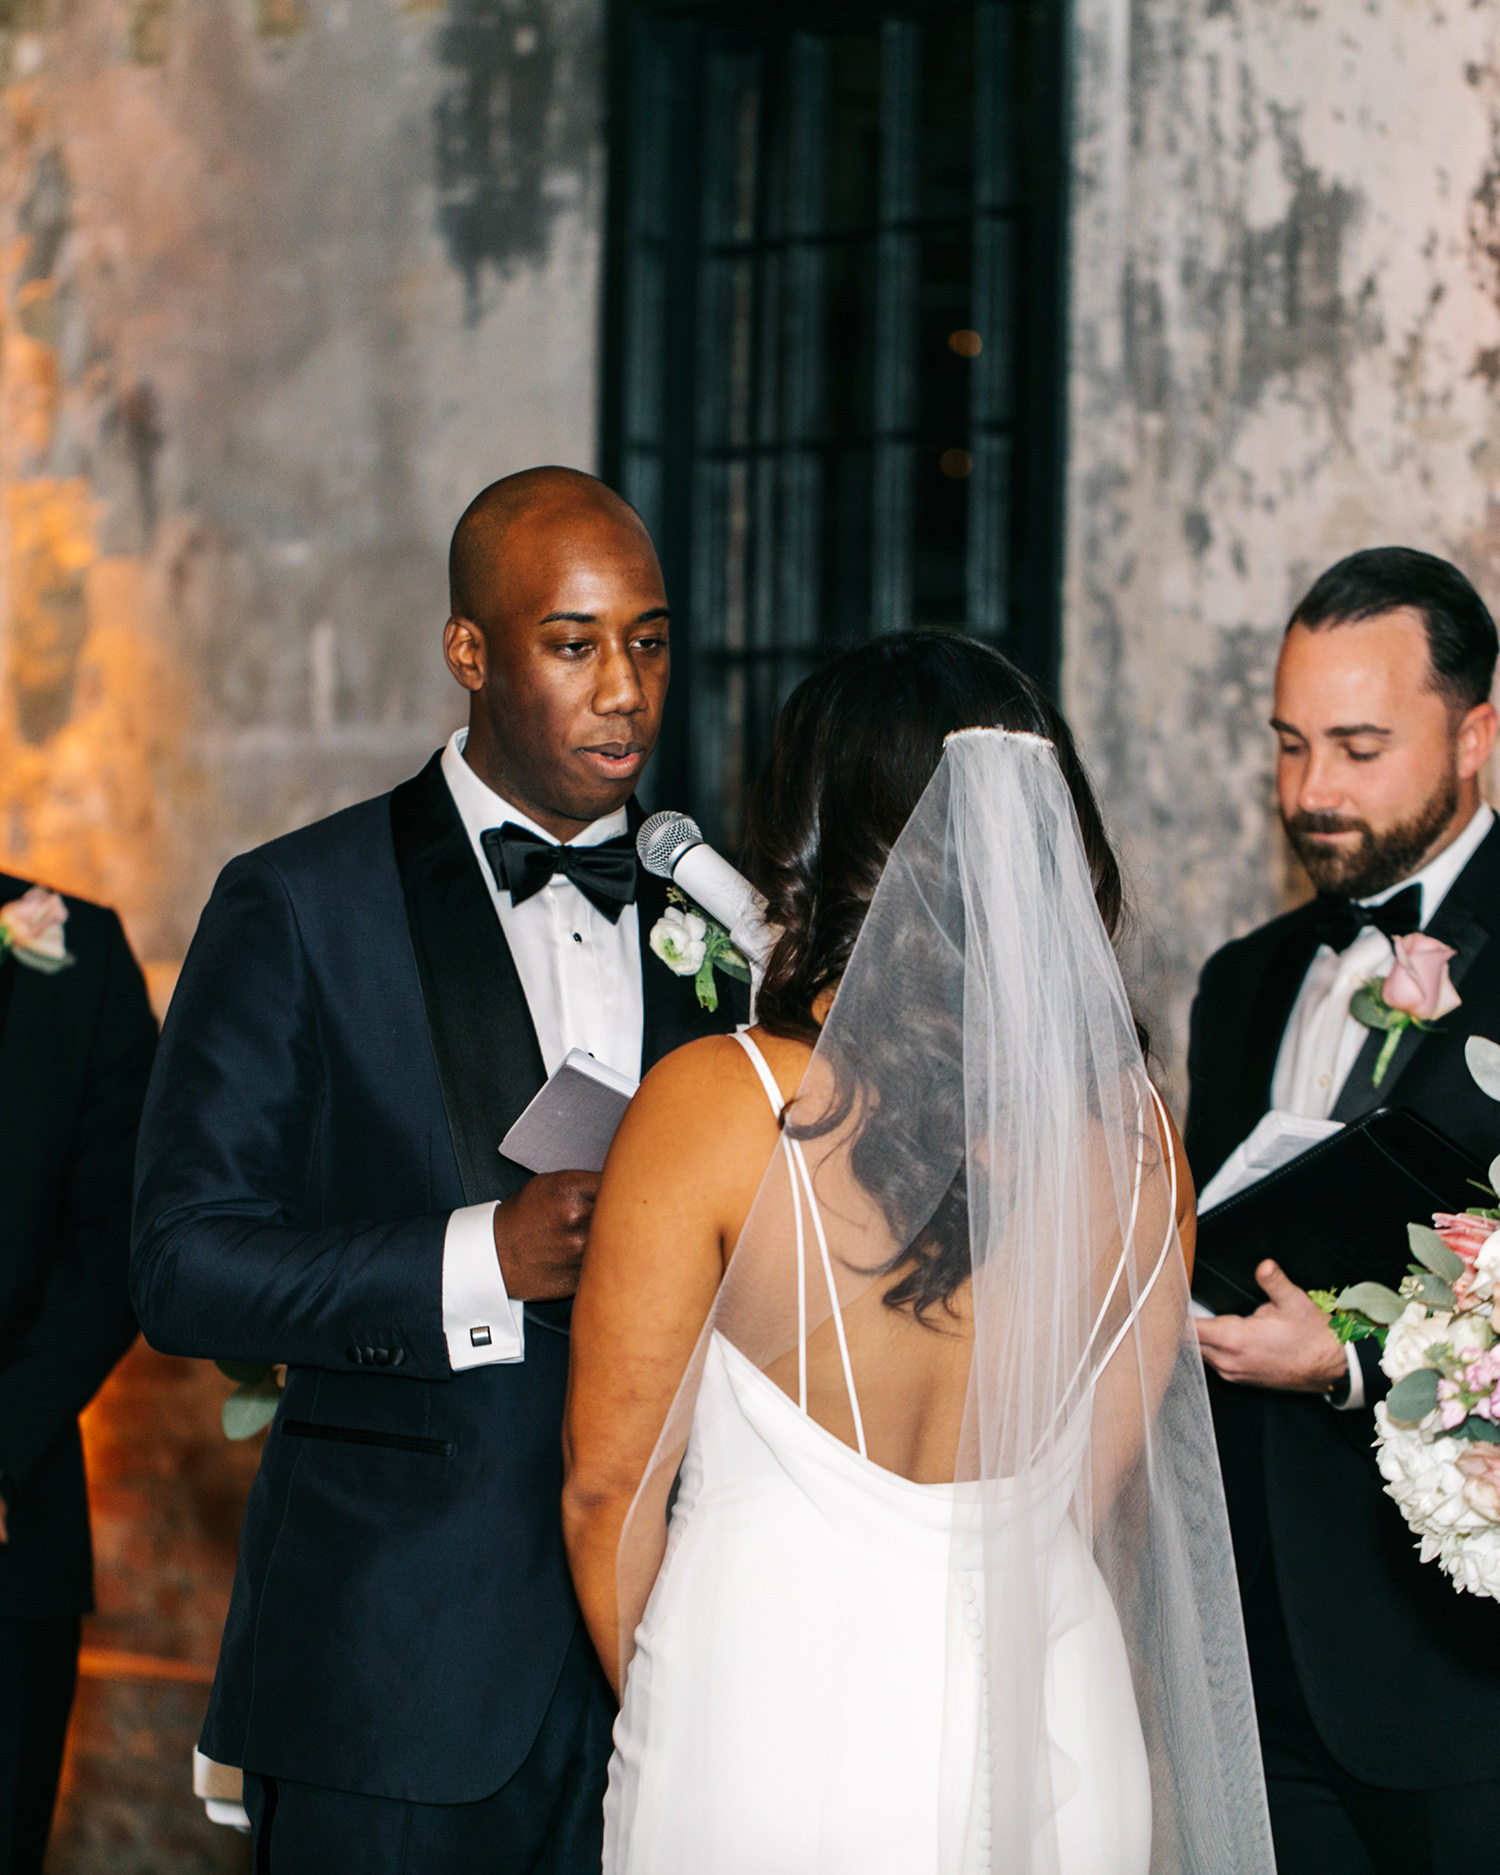 jessica ali wedding vows couple